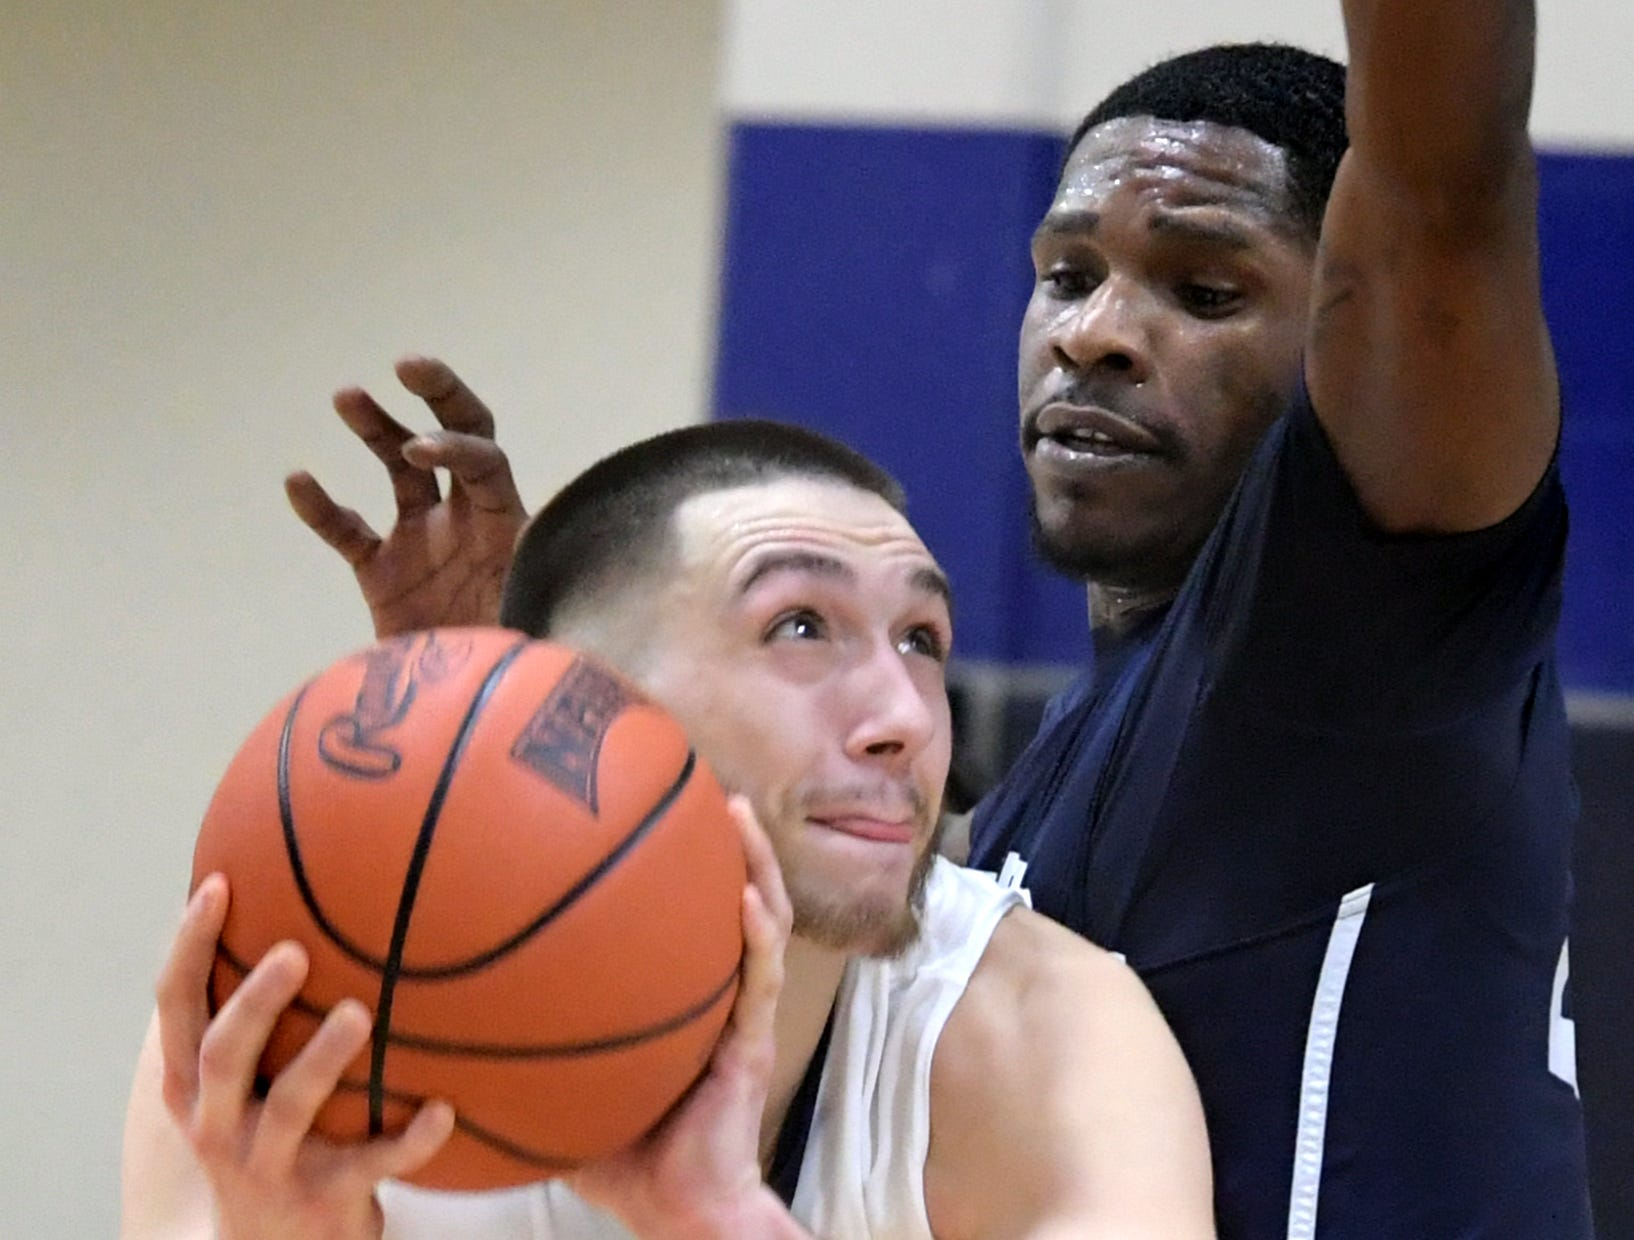 Penn State York's Chris Pitcher looks for the basket with pressure from Penn State Wilkes-Barre's Davaughn Roberts during action in York Tuesday, Nov. 27, 2018. Bill Kalina photo